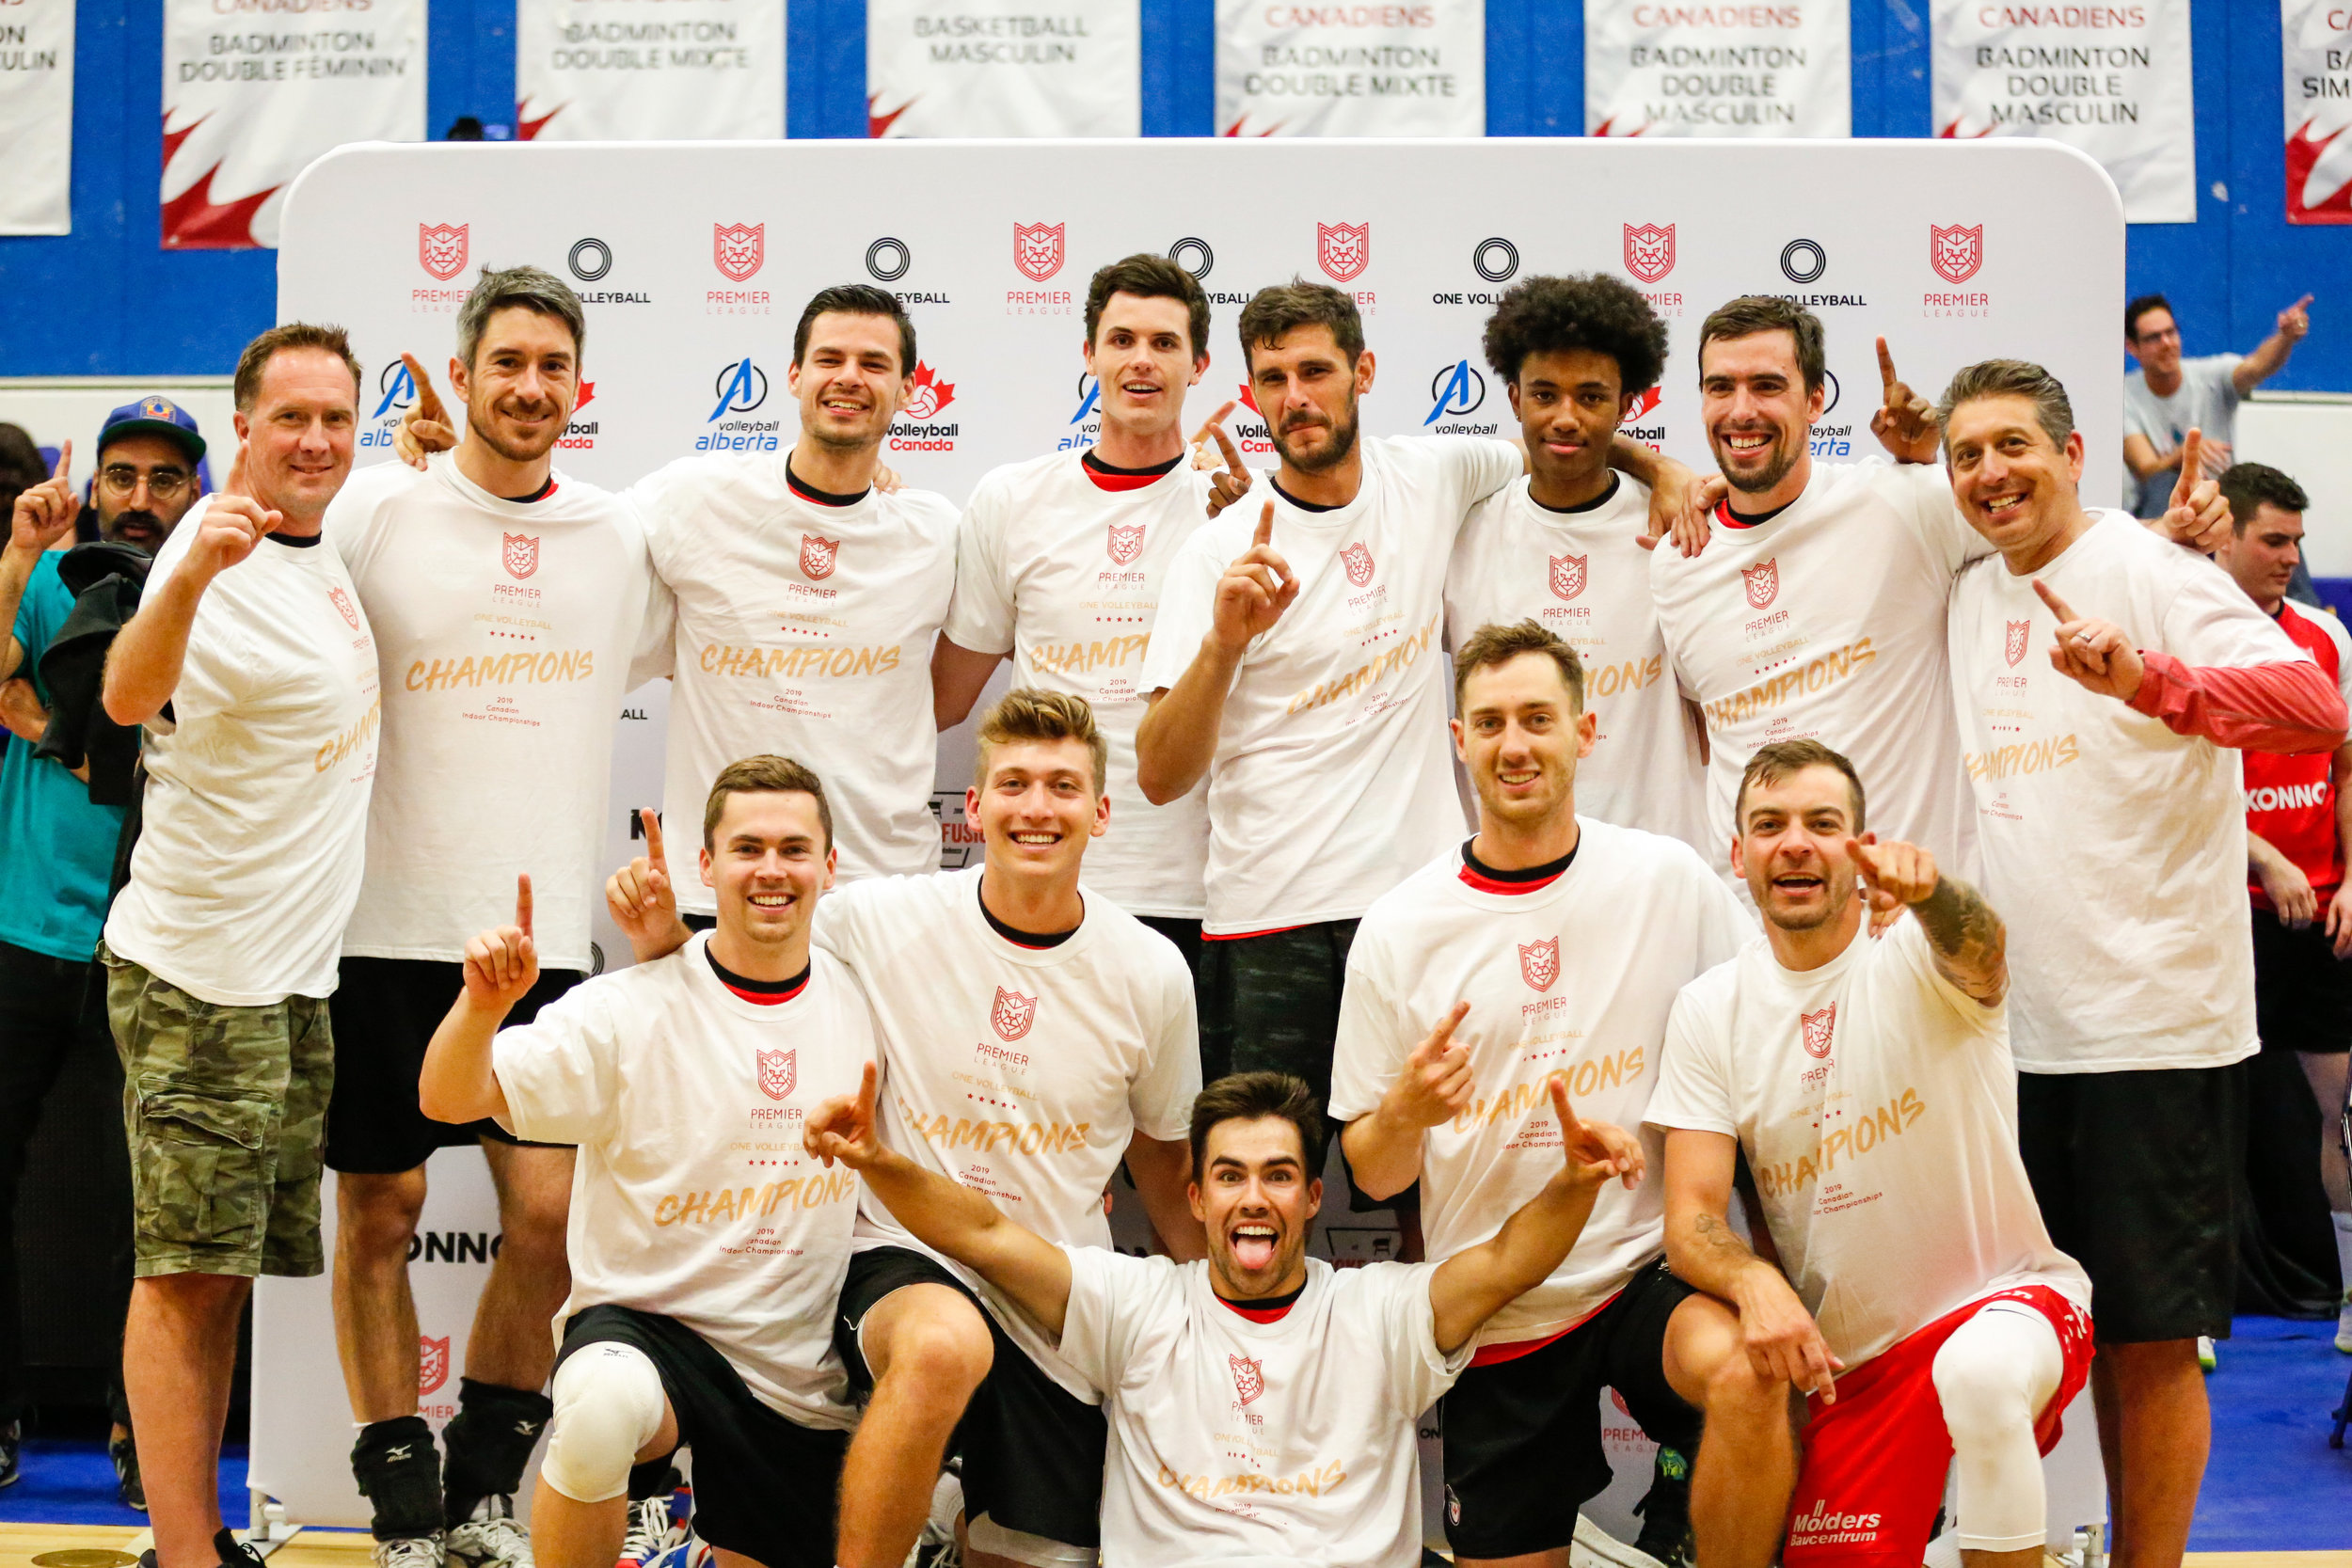 Madawaska Madness take home the 2019 Canada Cup